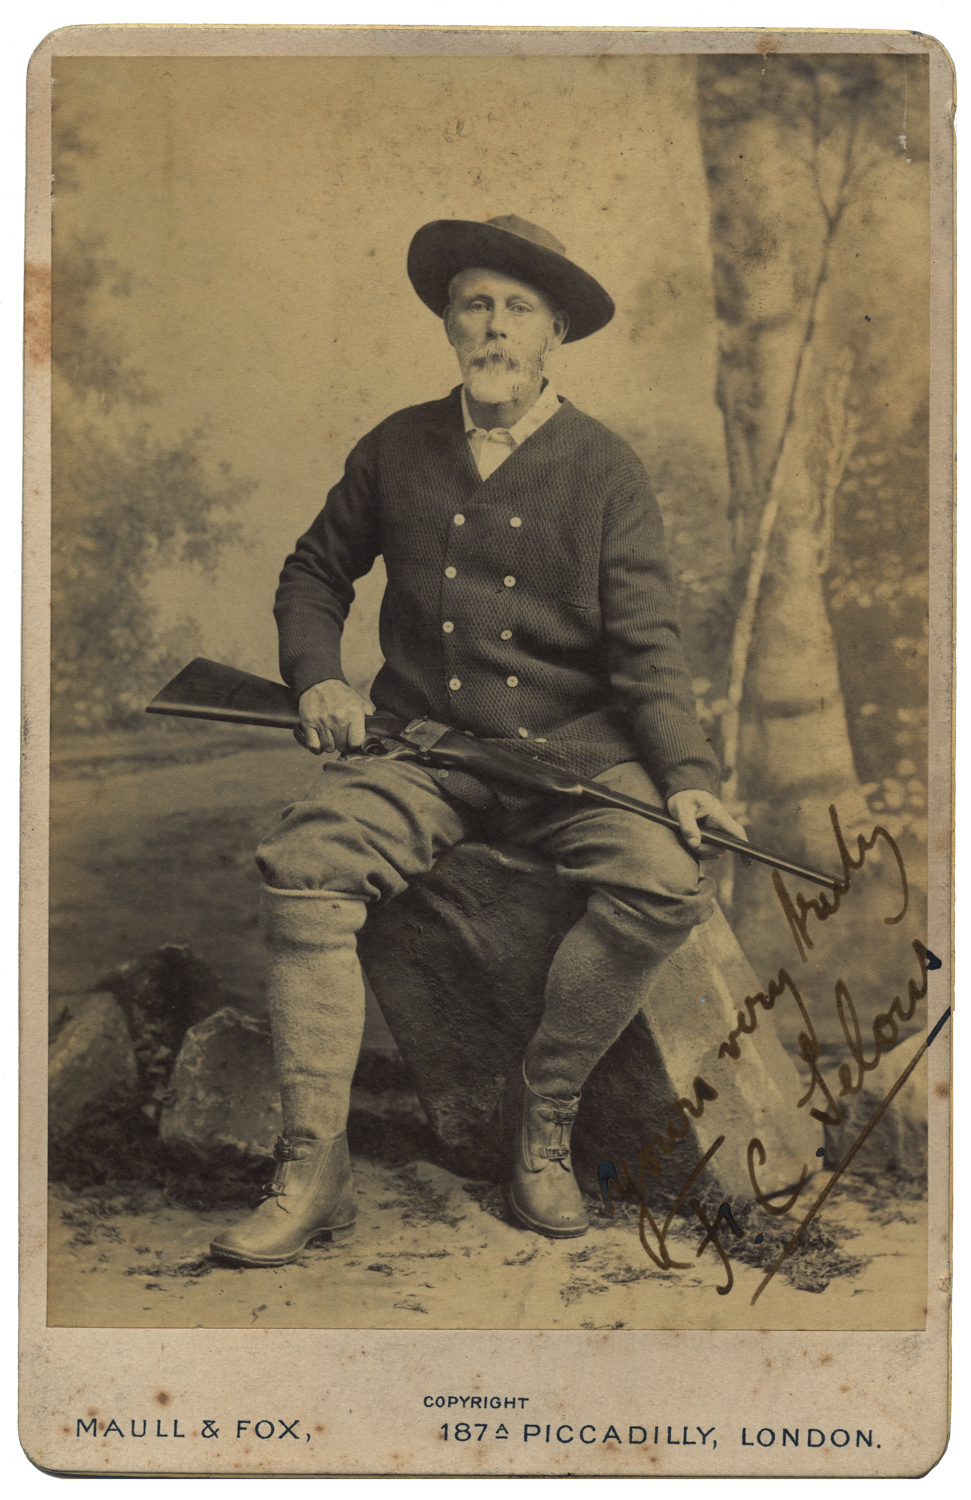 Frederick Courtenay Selous with his Westley-Richards made Farquharson rifle. (Picture courtesy theexplorer.com).